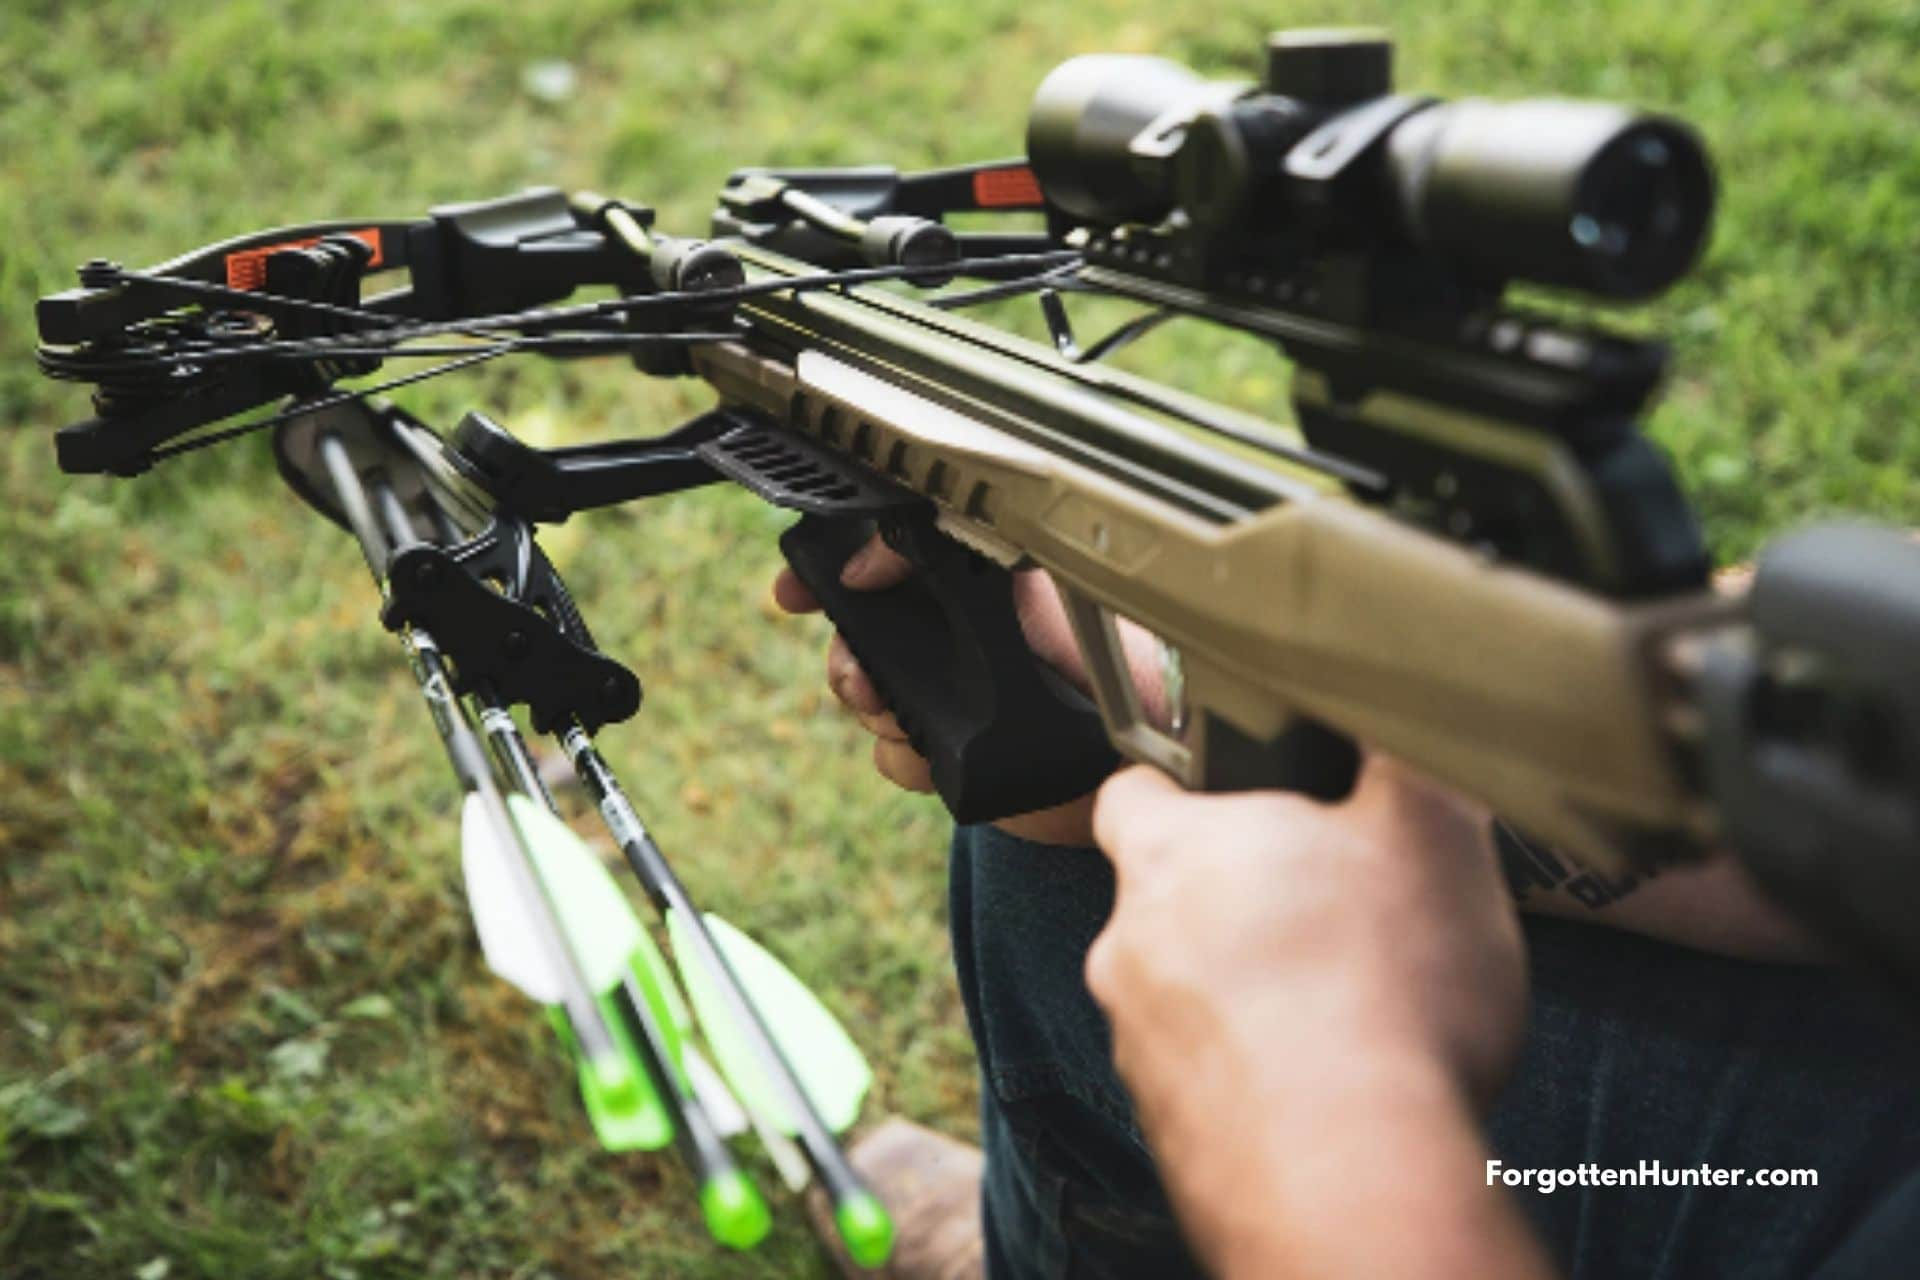 RM360 Review - Is this Rocky Mountain Crossbow Still Worth The Money In 2020